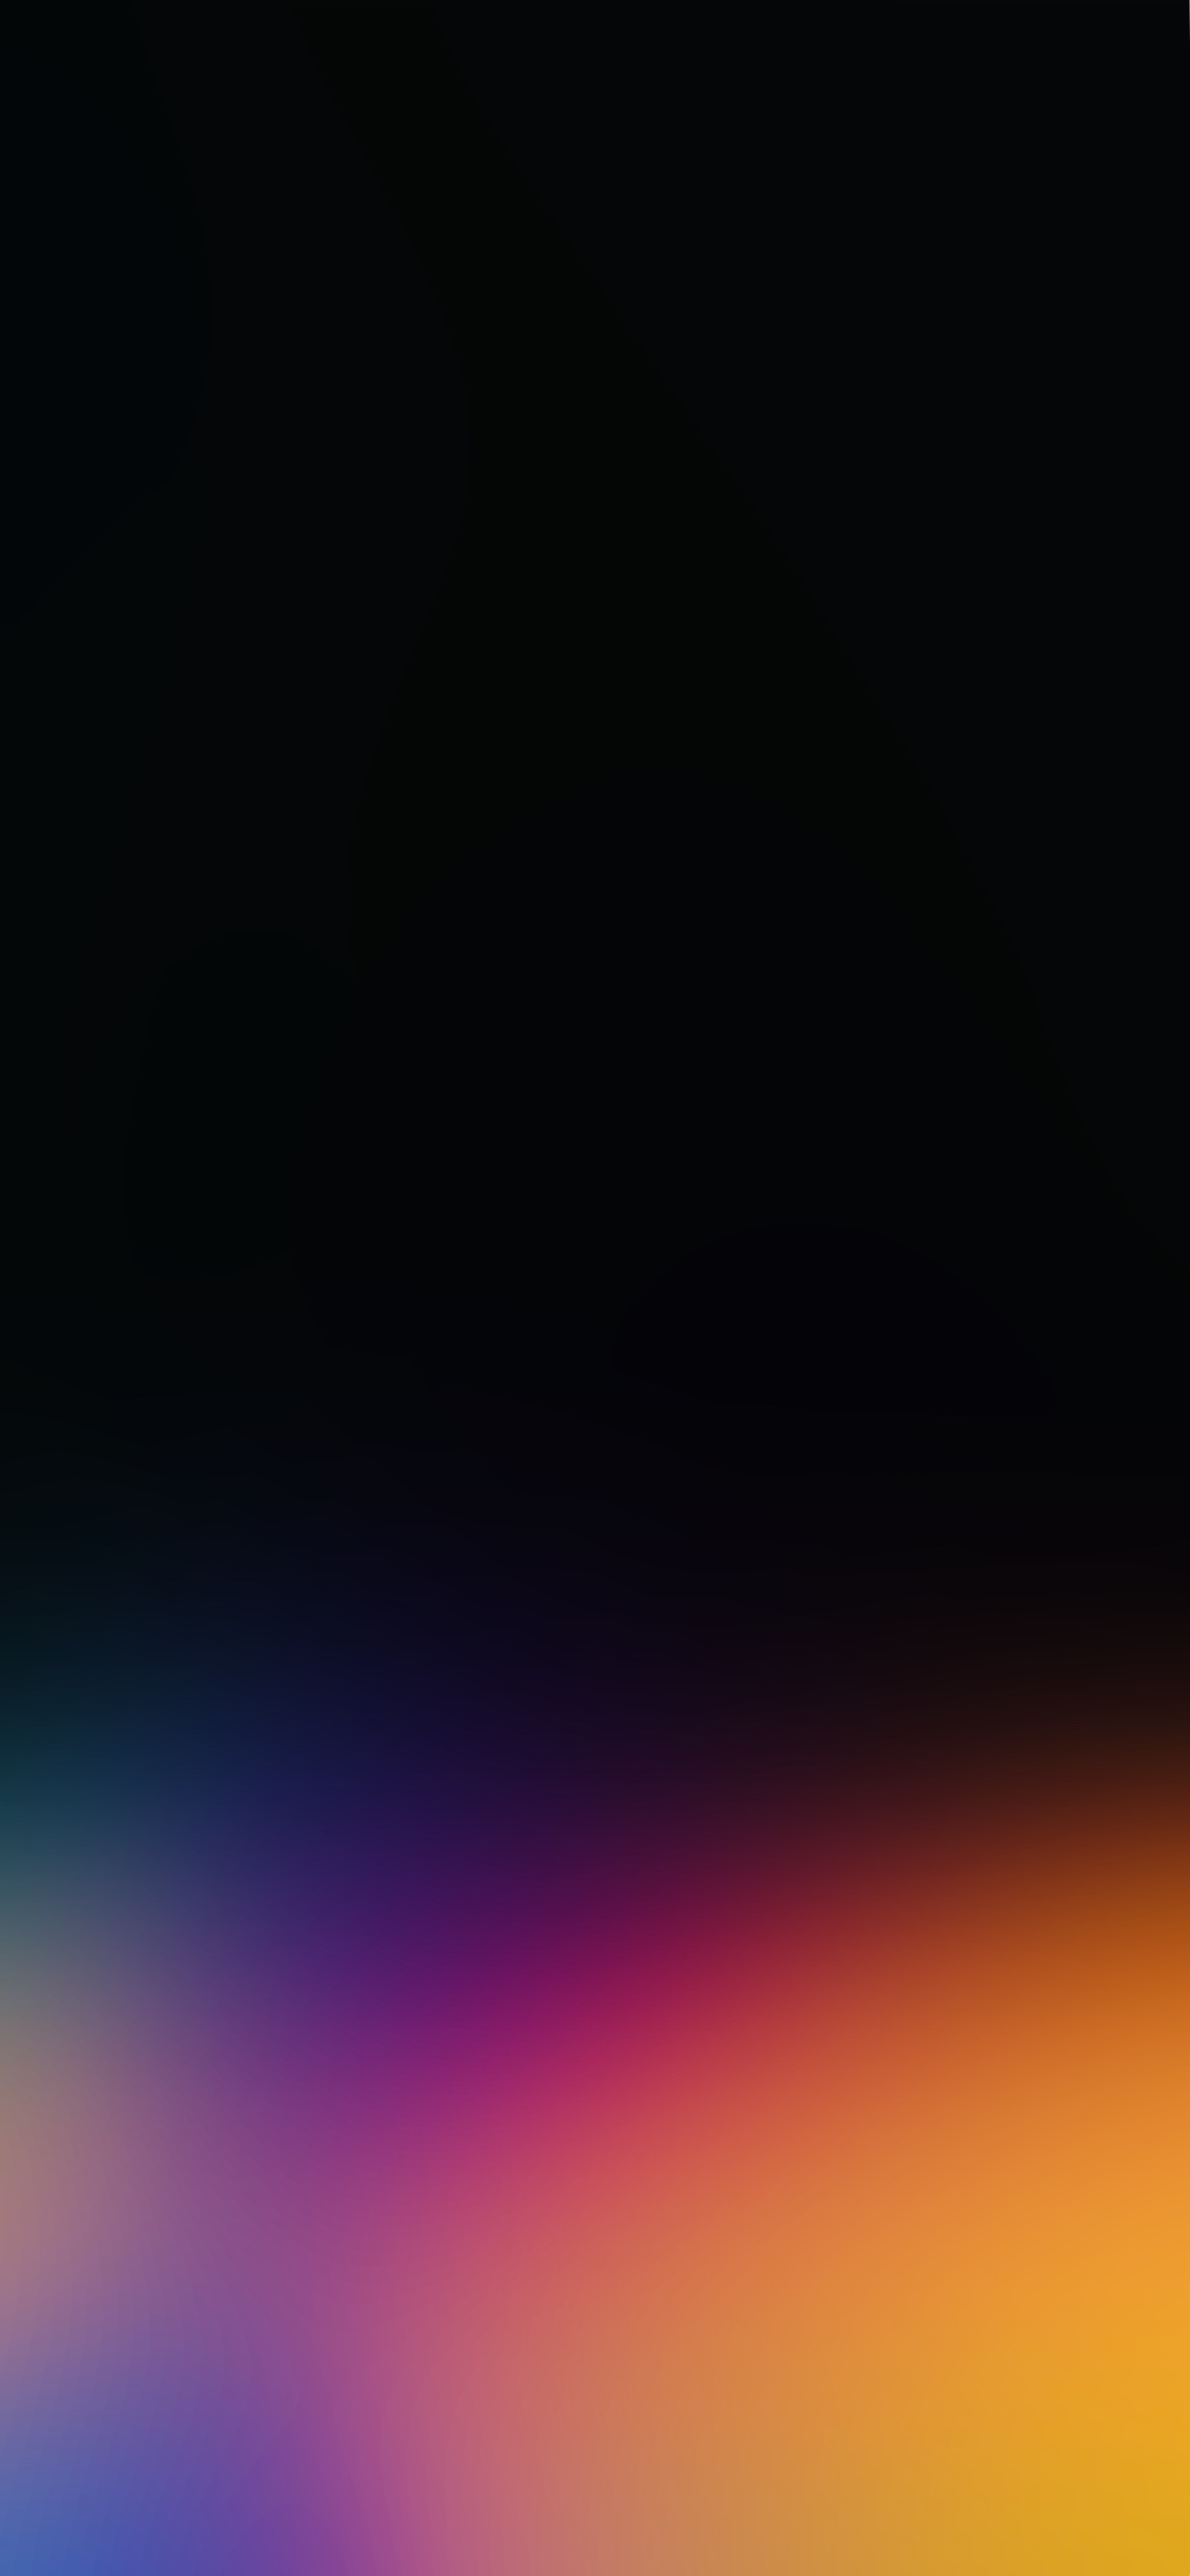 Gradient Black To Orange By Ar72014 On Twitter Zollotech